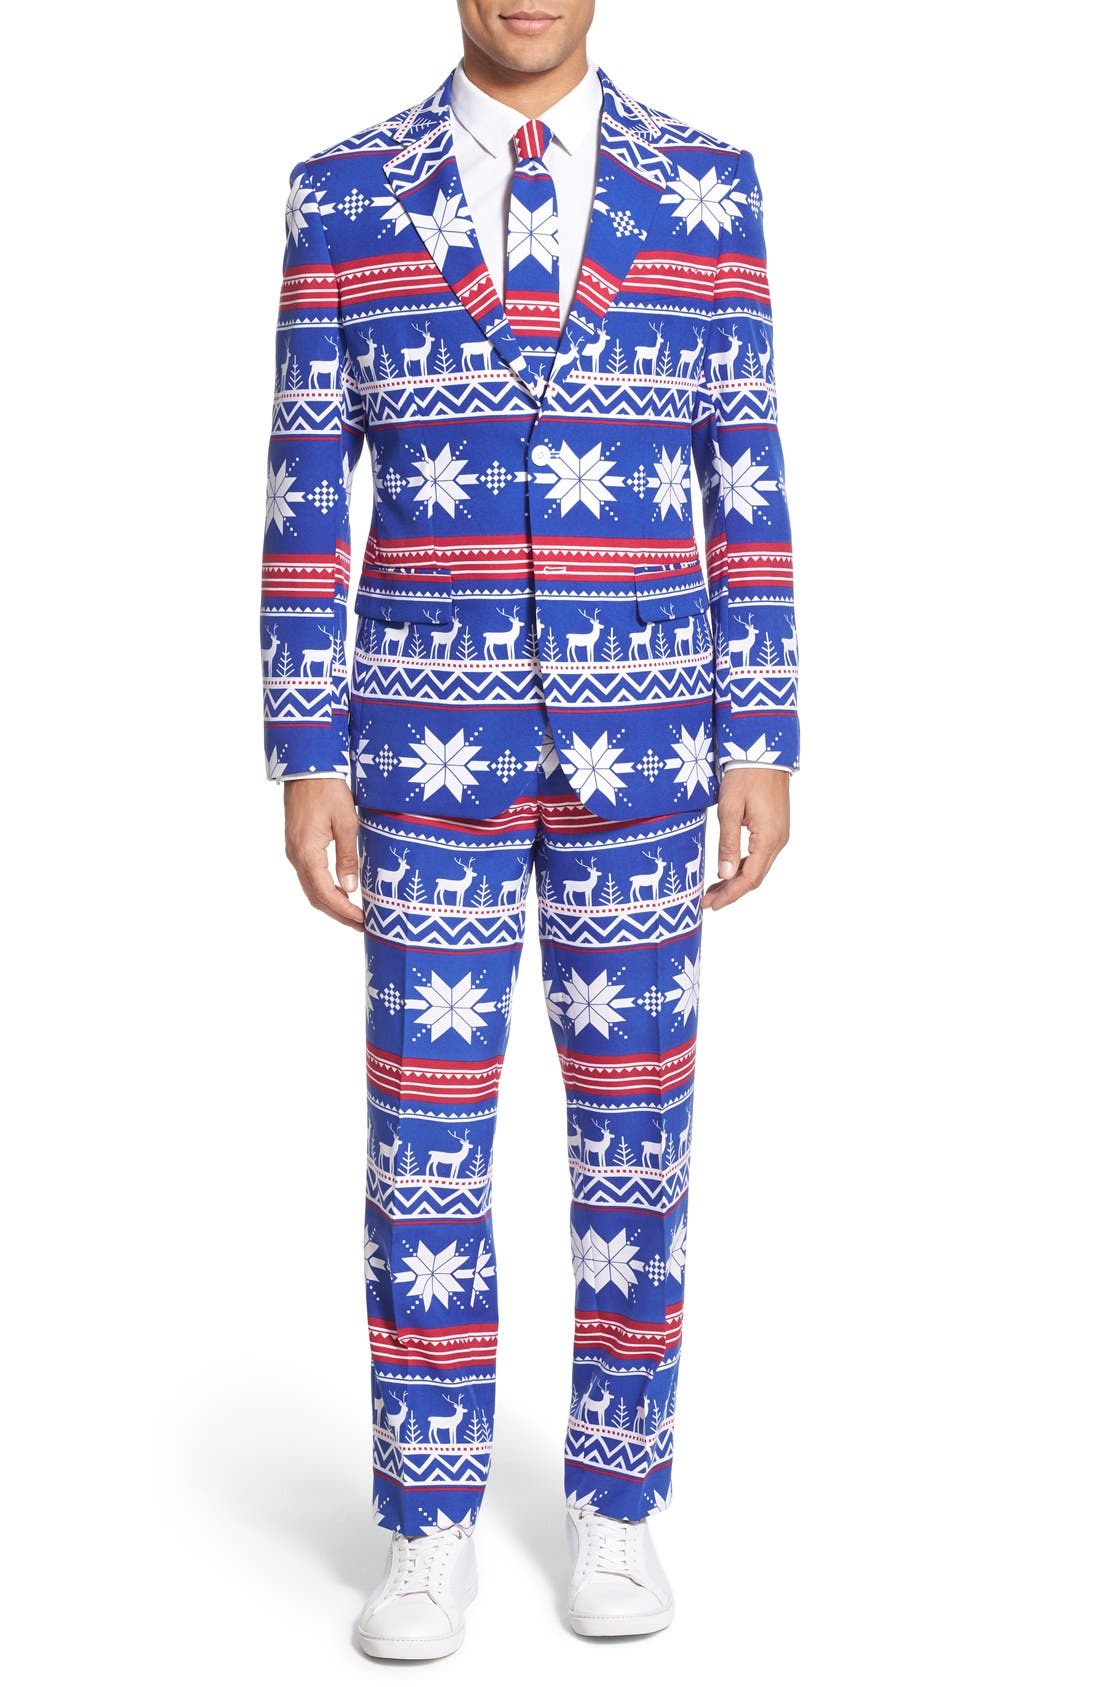 'Rudolph' Holiday Suit & Tie,                         Main,                         color, Blue